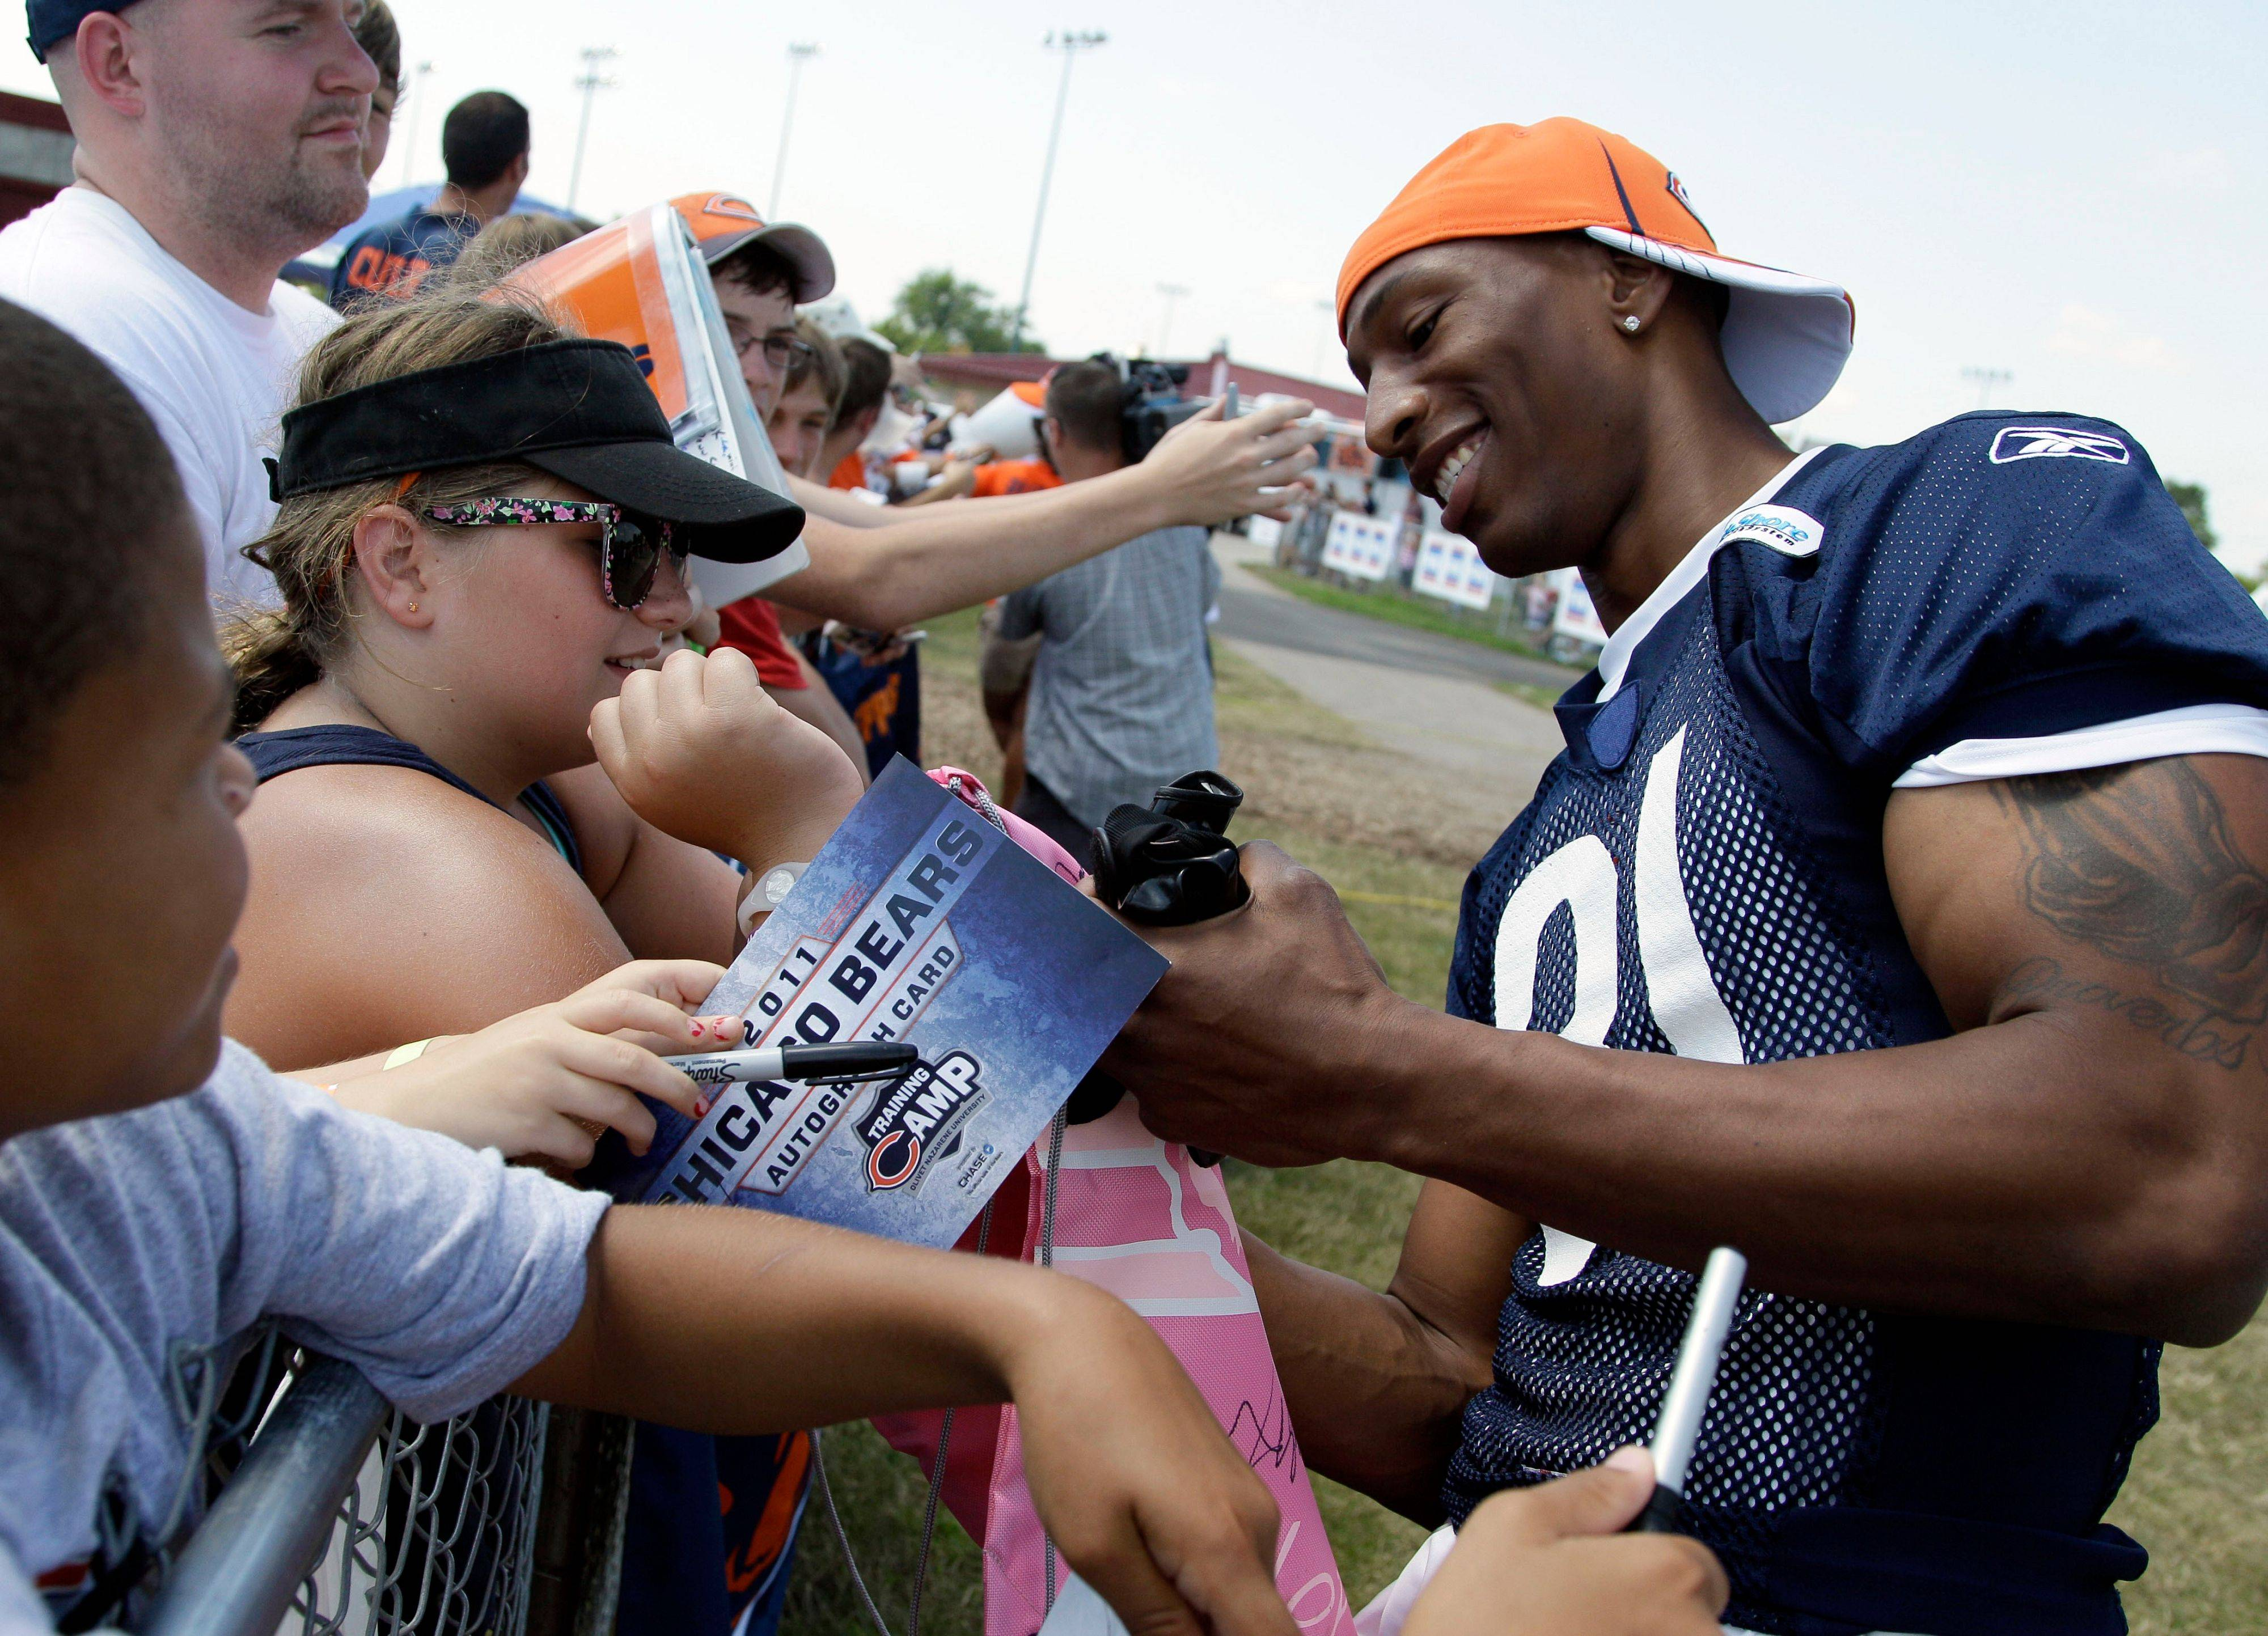 Chicago Bears wide receiver Sam Hurd, right, signs autographs for fans before NFL football training camp in July at Olivet Nazarene University in Bourbonnais, Ill.